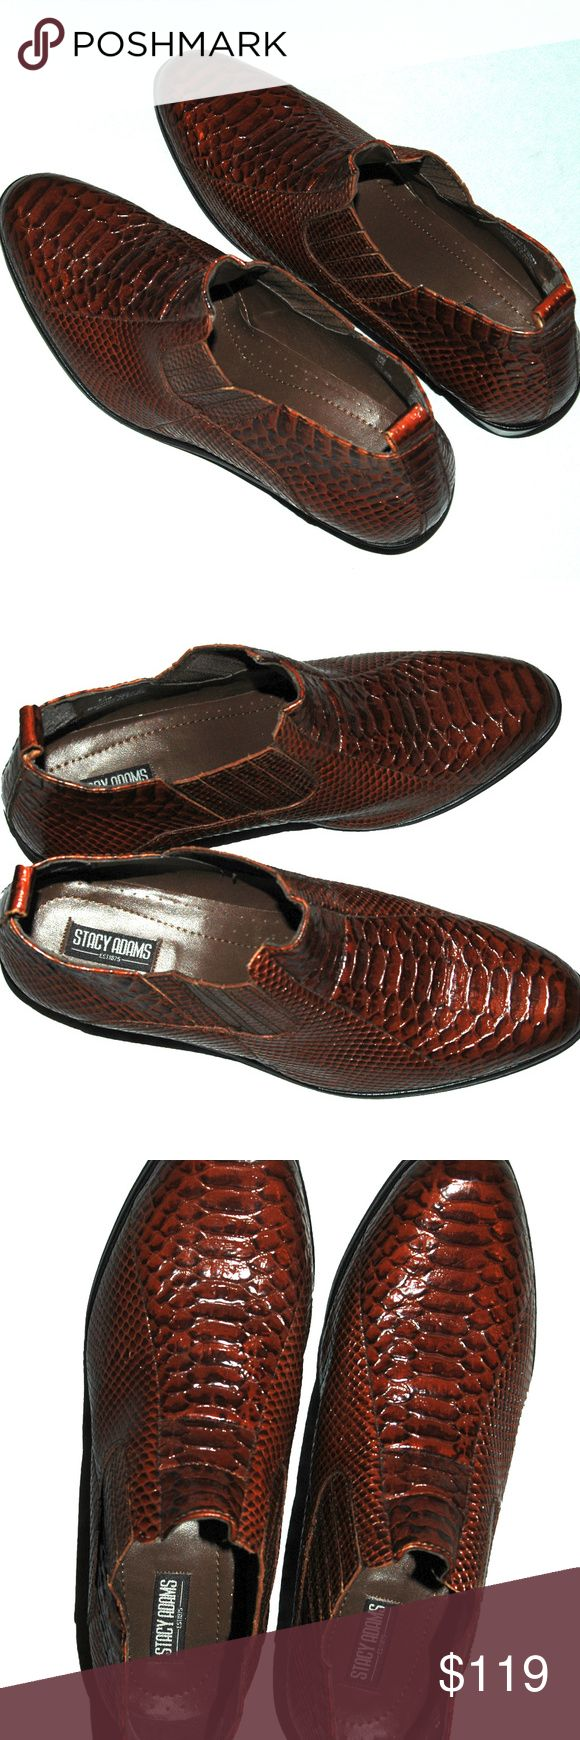 Stacy Adams Mens 11 M Shoes Brown Exotic Leather Beautiful and rare pair of Stacy Adams men's leather snakeskin pattern dress shoes in a size 11 M in very good condition. They were made in India and have an exquisite look and feel. Please view all photos to see up close and thank you for looking! Stacy Adams Shoes Loafers & Slip-Ons